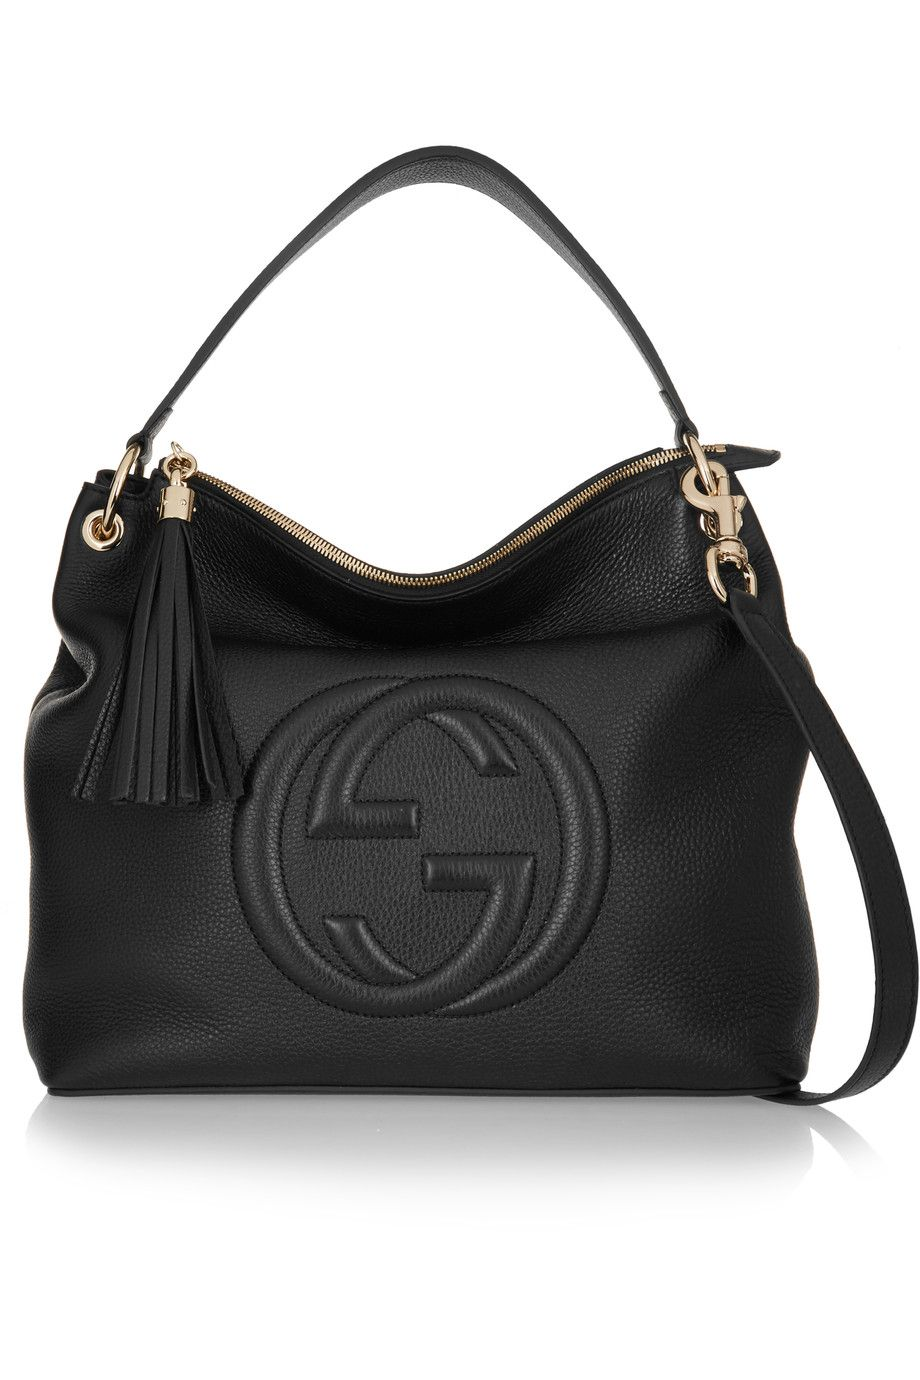 ed72b6681f0 GUCCI Soho Hobo textured-leather shoulder bag €1